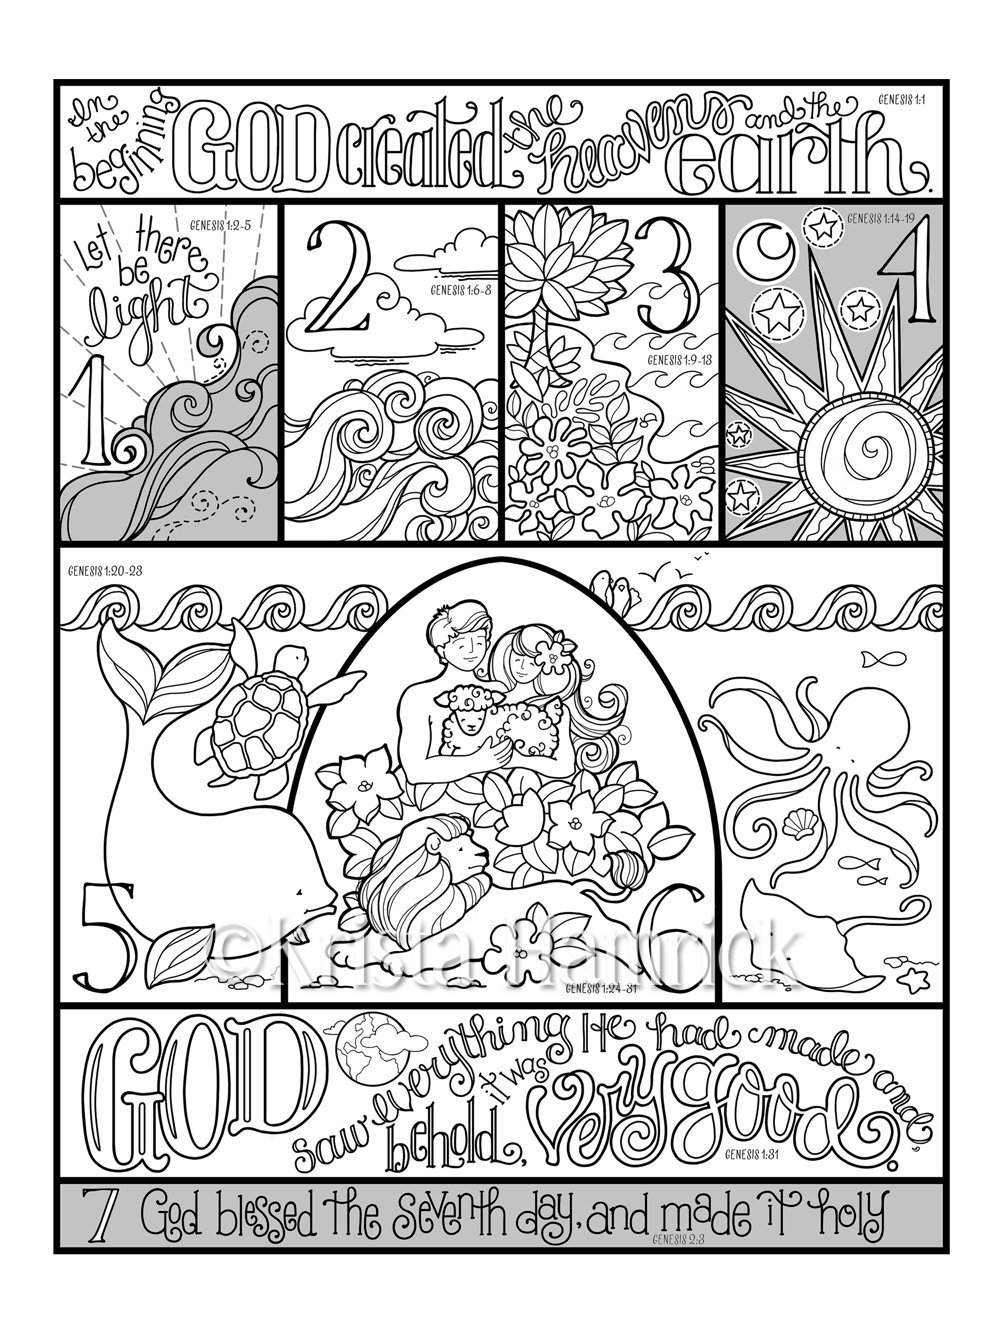 coloring sheet 7 days of creation coloring pages free 7 days of creation coloring pages coloring home free sheet pages days 7 creation coloring coloring of